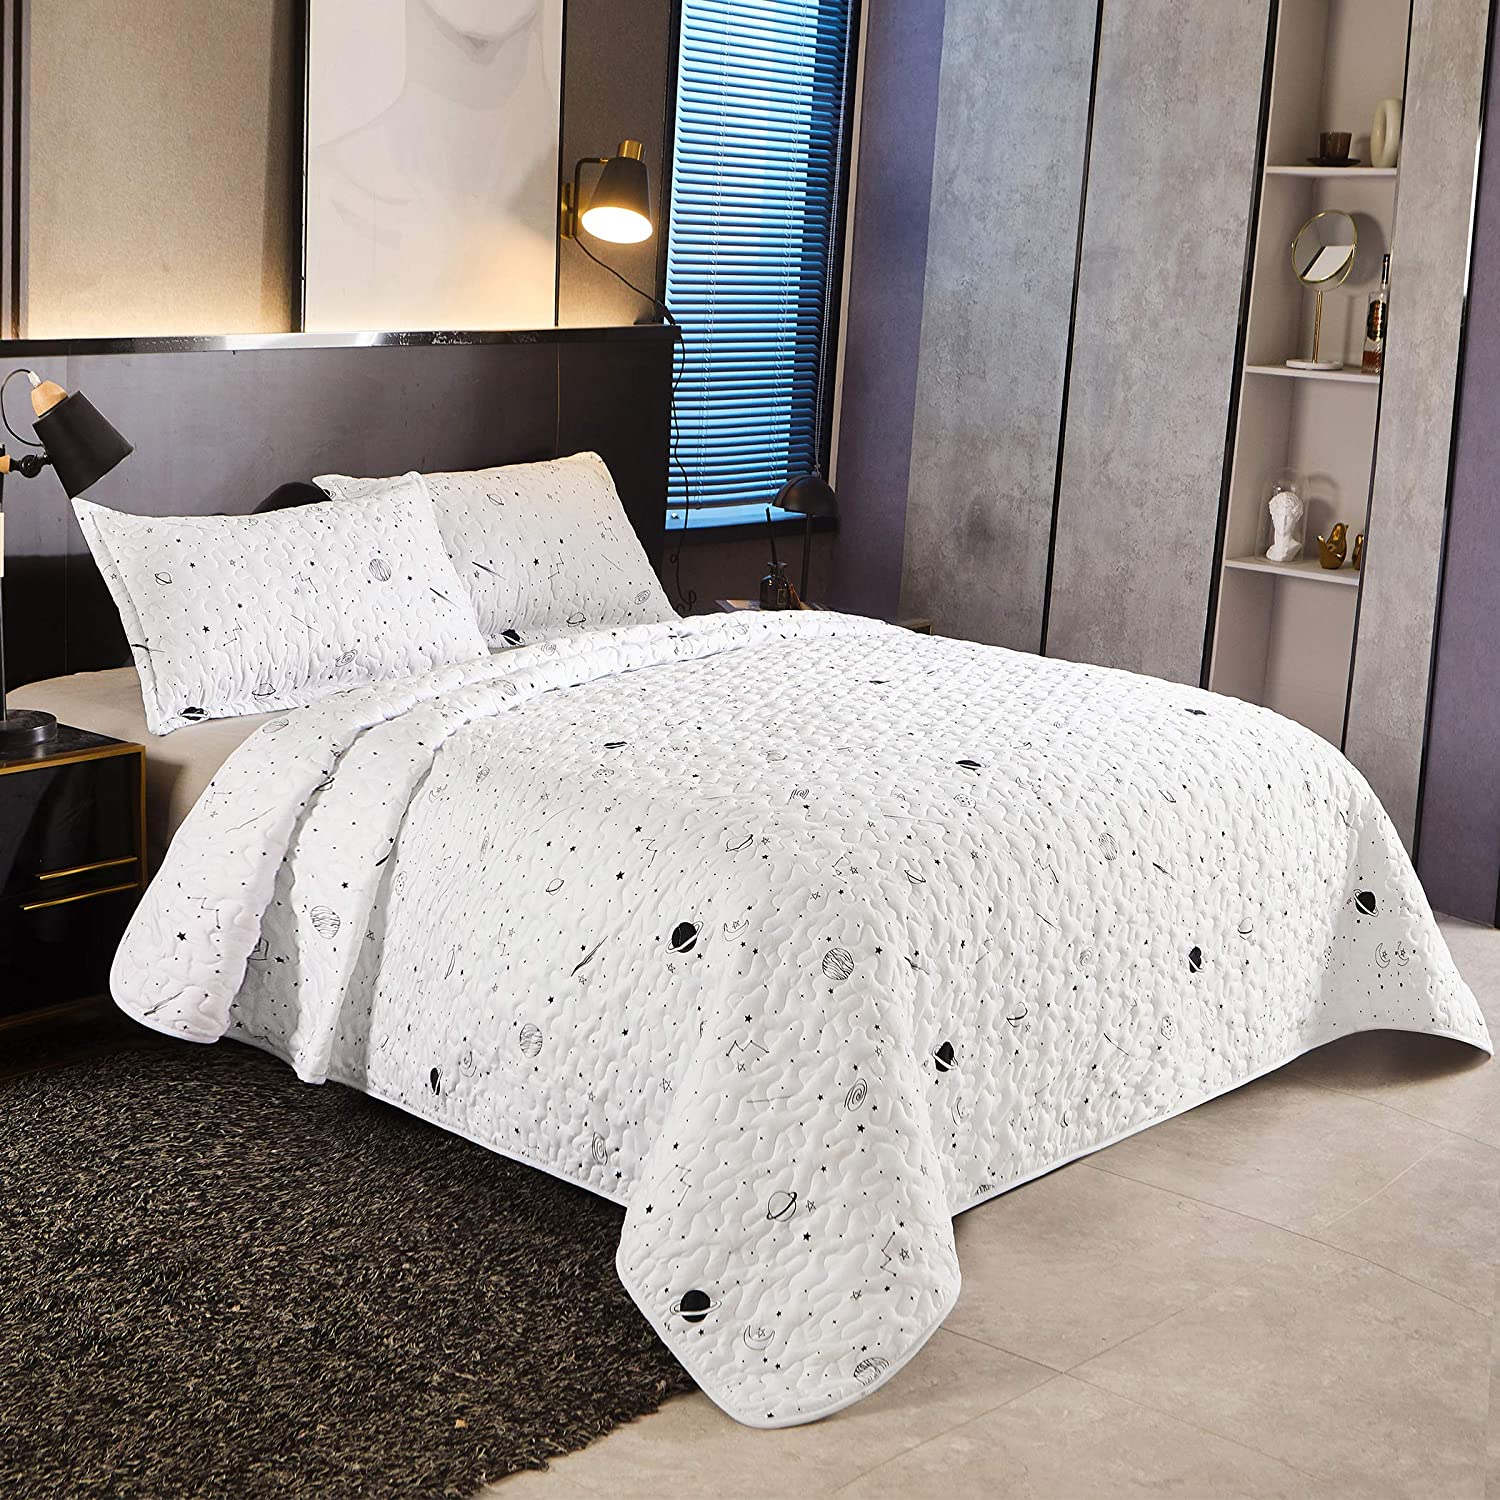 LAMEJOR Galaxy Quilt Dallas Mall Set Queen Popular product Planet Comforte Size Star Pattern